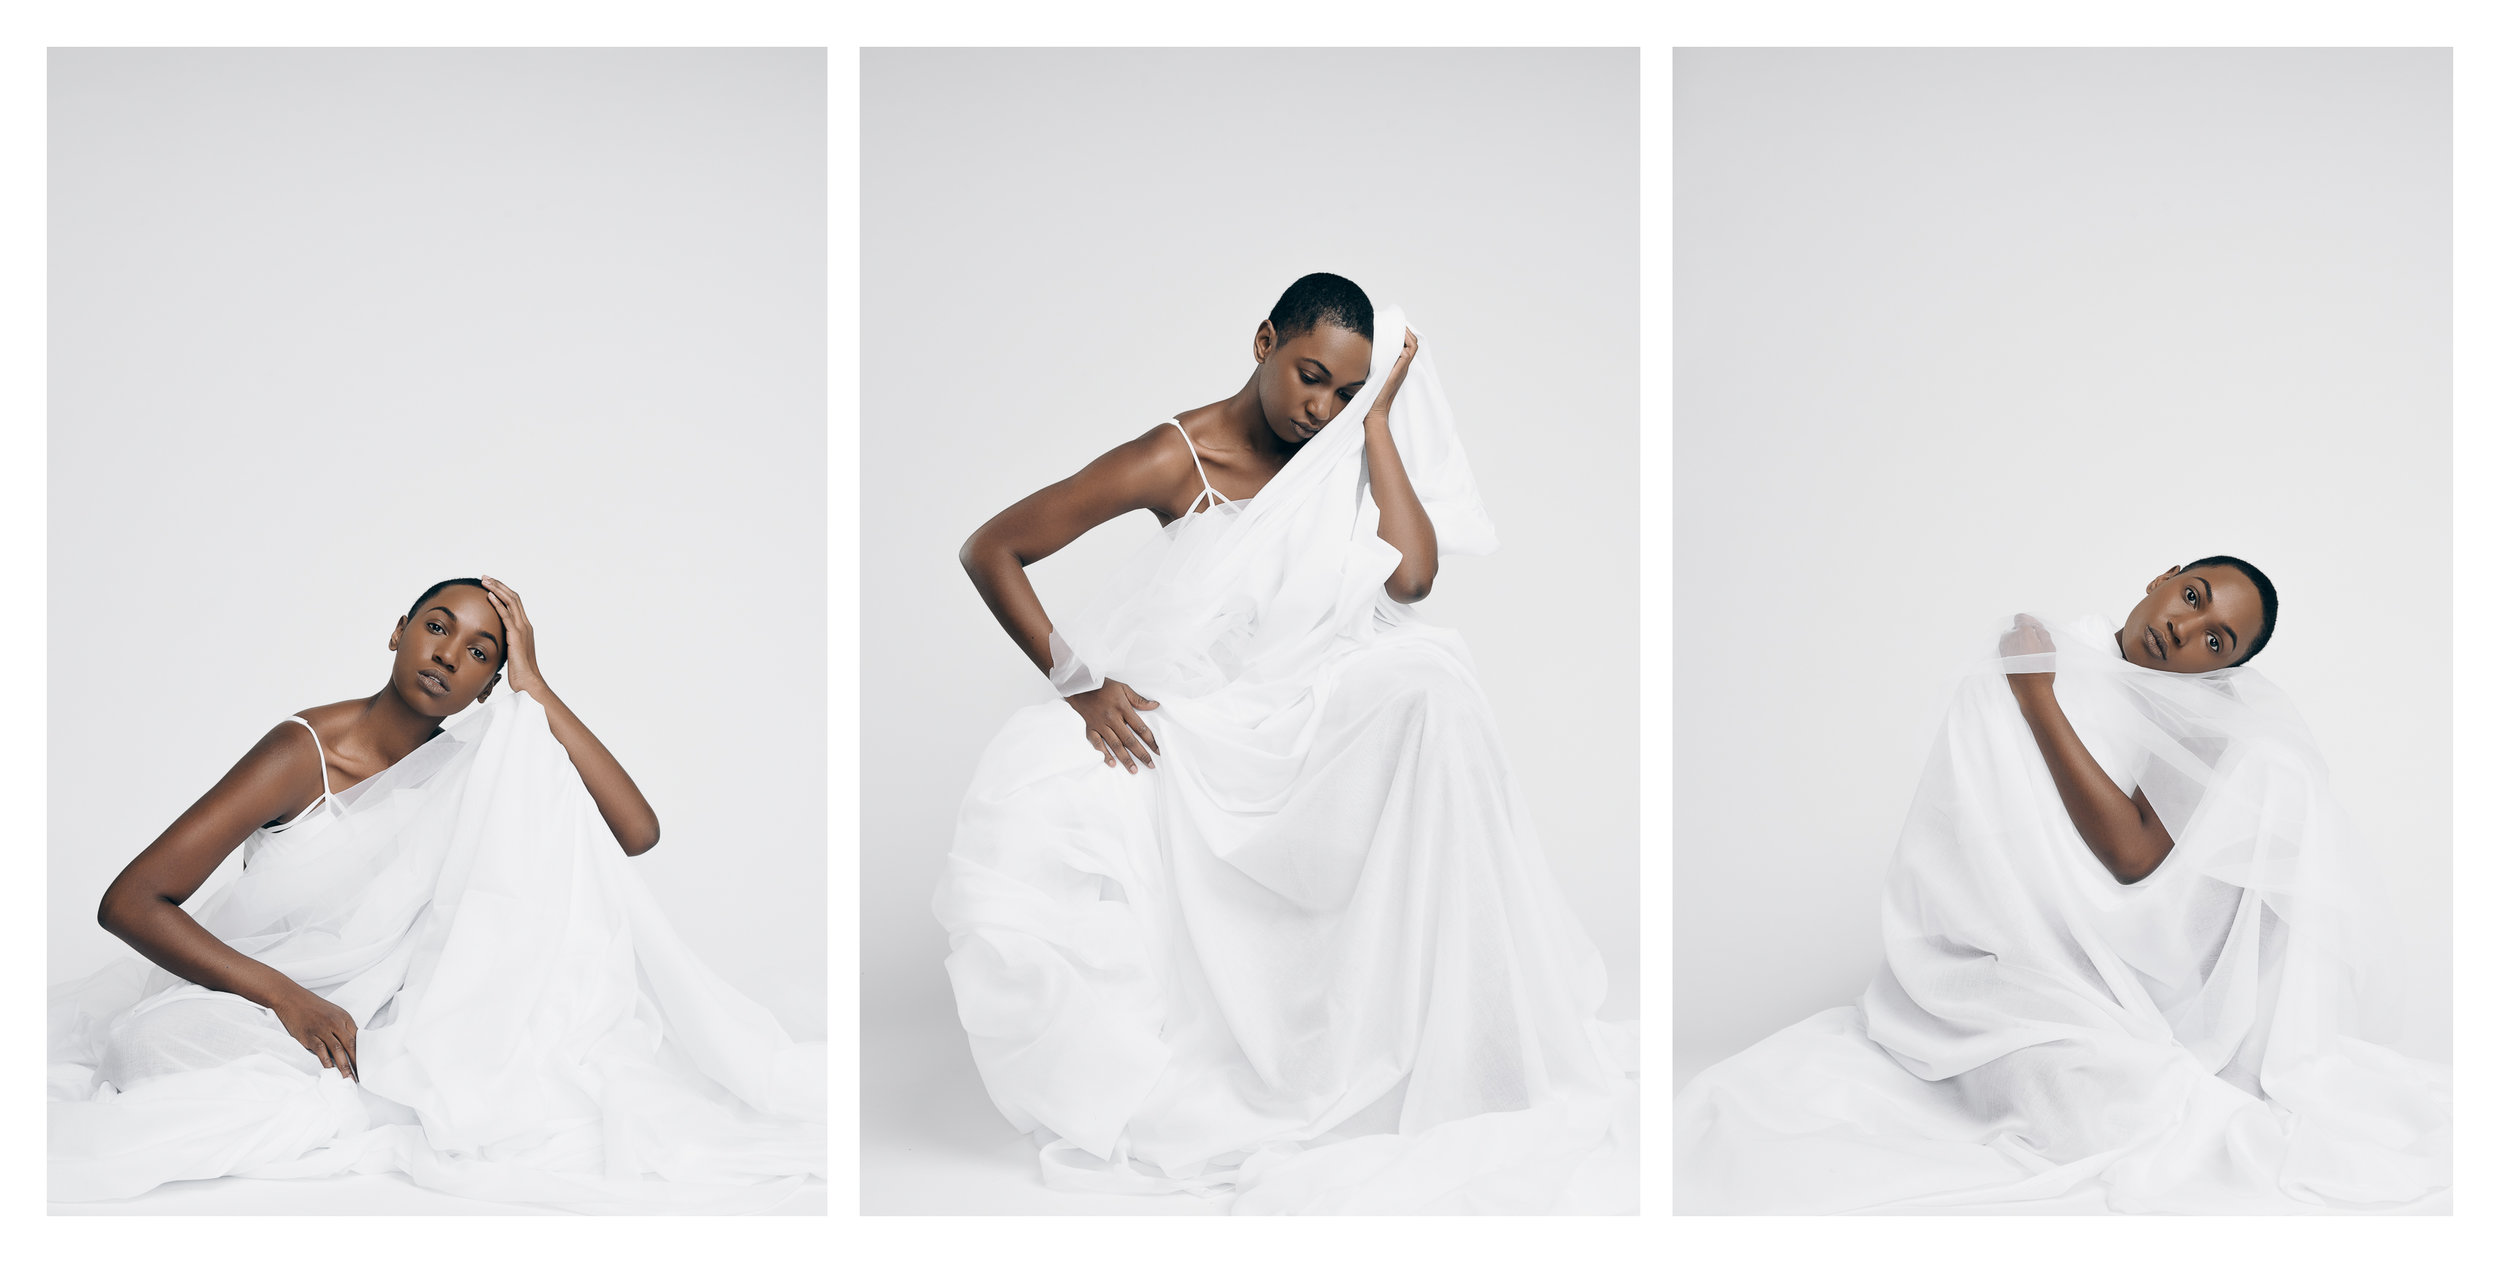 sye-spence-more-triptych-01.jpg